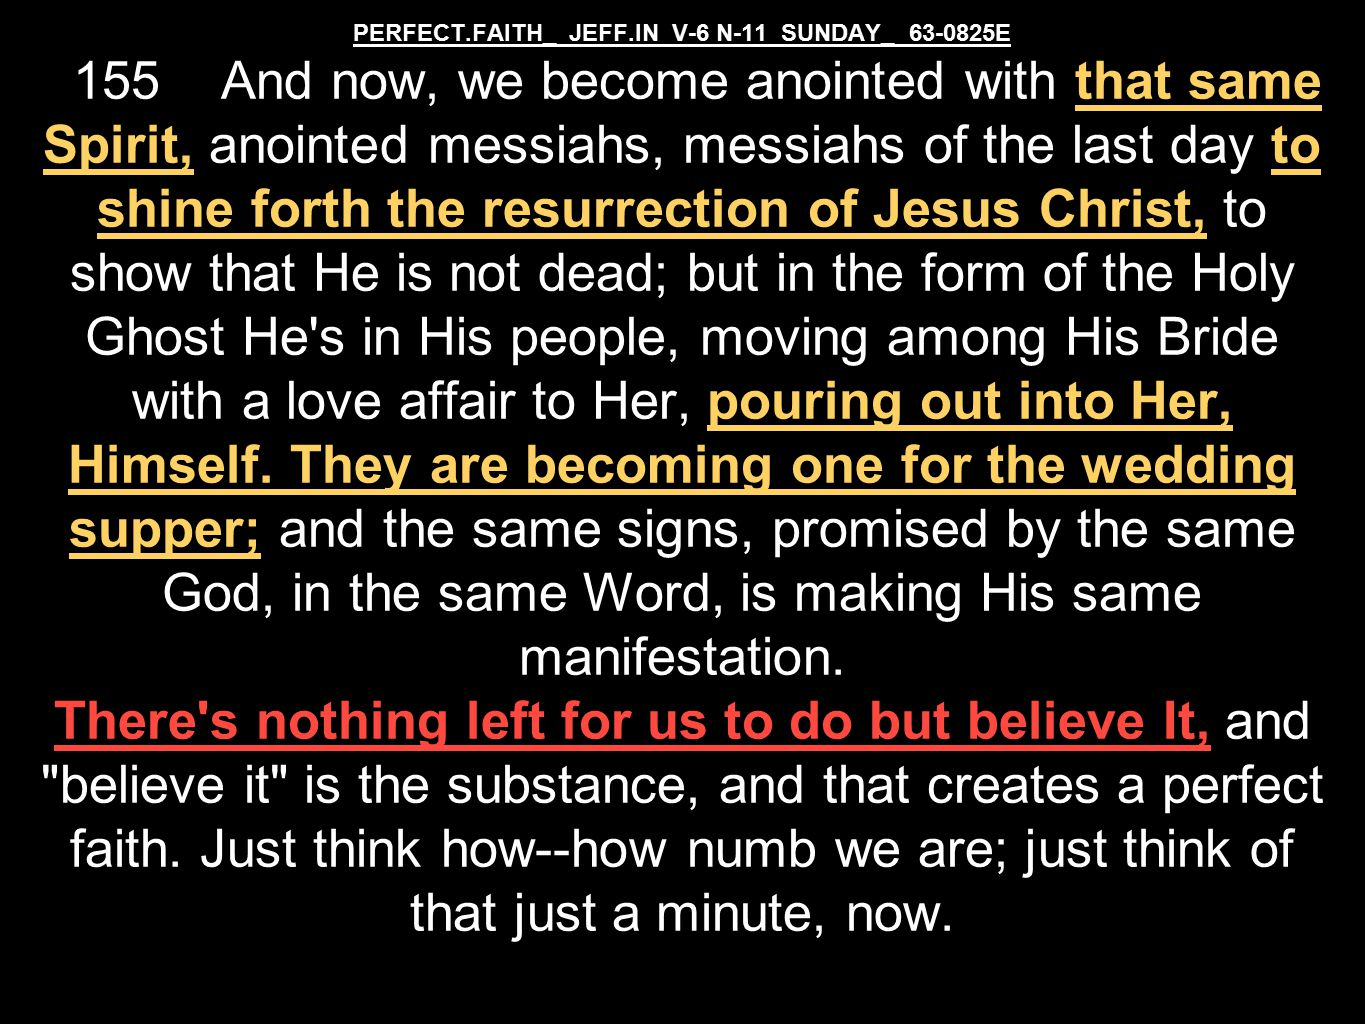 PERFECT.FAITH_ JEFF.IN V-6 N-11 SUNDAY_ 63-0825E 155 And now, we become anointed with that same Spirit, anointed messiahs, messiahs of the last day to shine forth the resurrection of Jesus Christ, to show that He is not dead; but in the form of the Holy Ghost He s in His people, moving among His Bride with a love affair to Her, pouring out into Her, Himself.